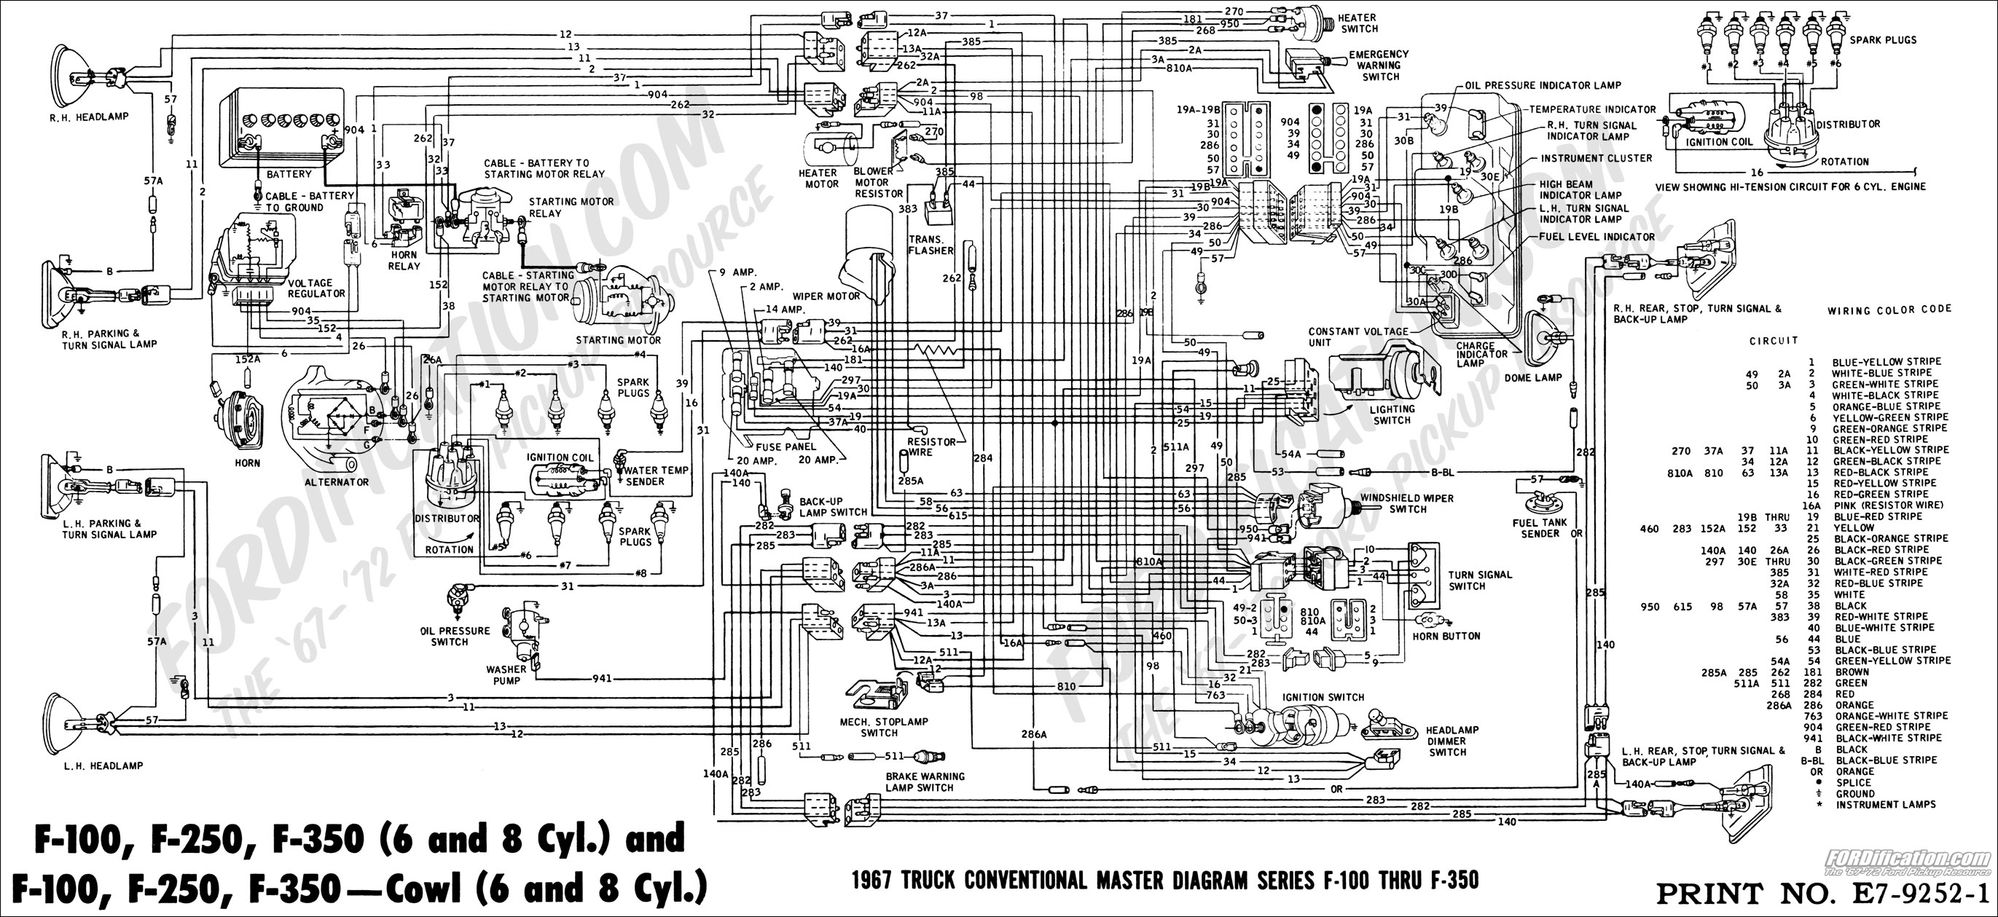 80 67masterdiagram_62e84d95f1b37d24ae81e72f8283cf0f23967323 emergency turnsignal flasher ford truck enthusiasts forums Ford F700 Wiring Diagrams at bayanpartner.co